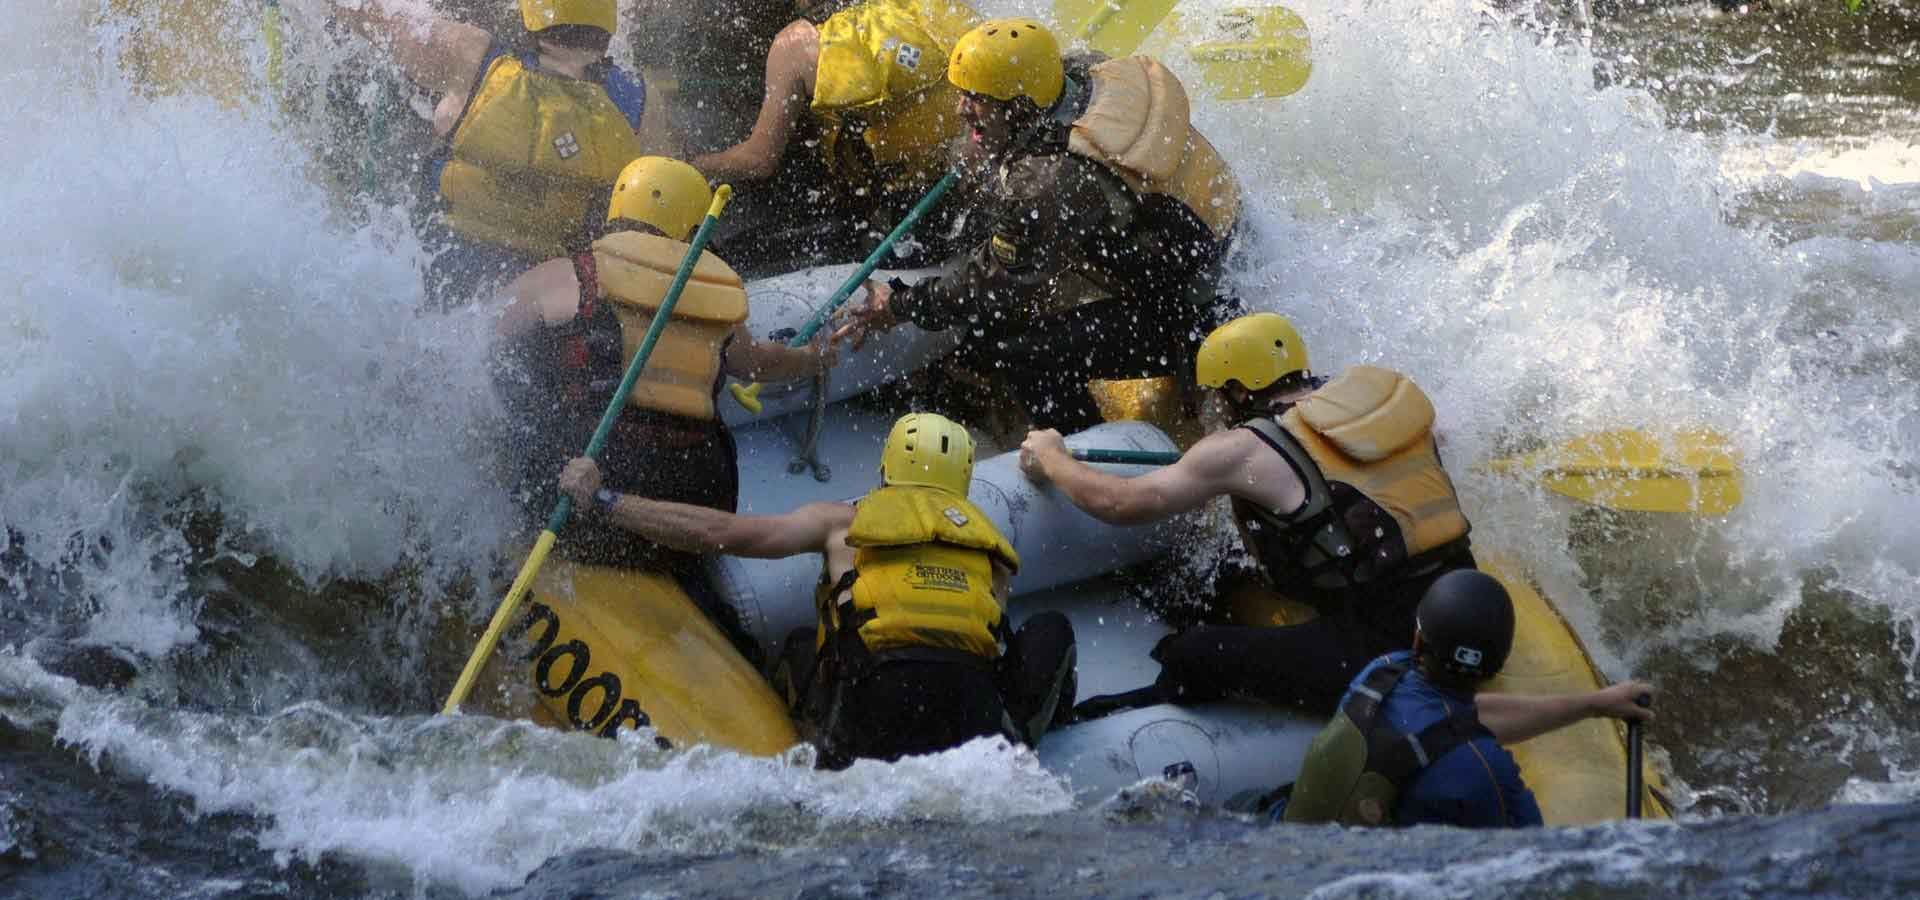 Huge whitewater action on the Kennebec River